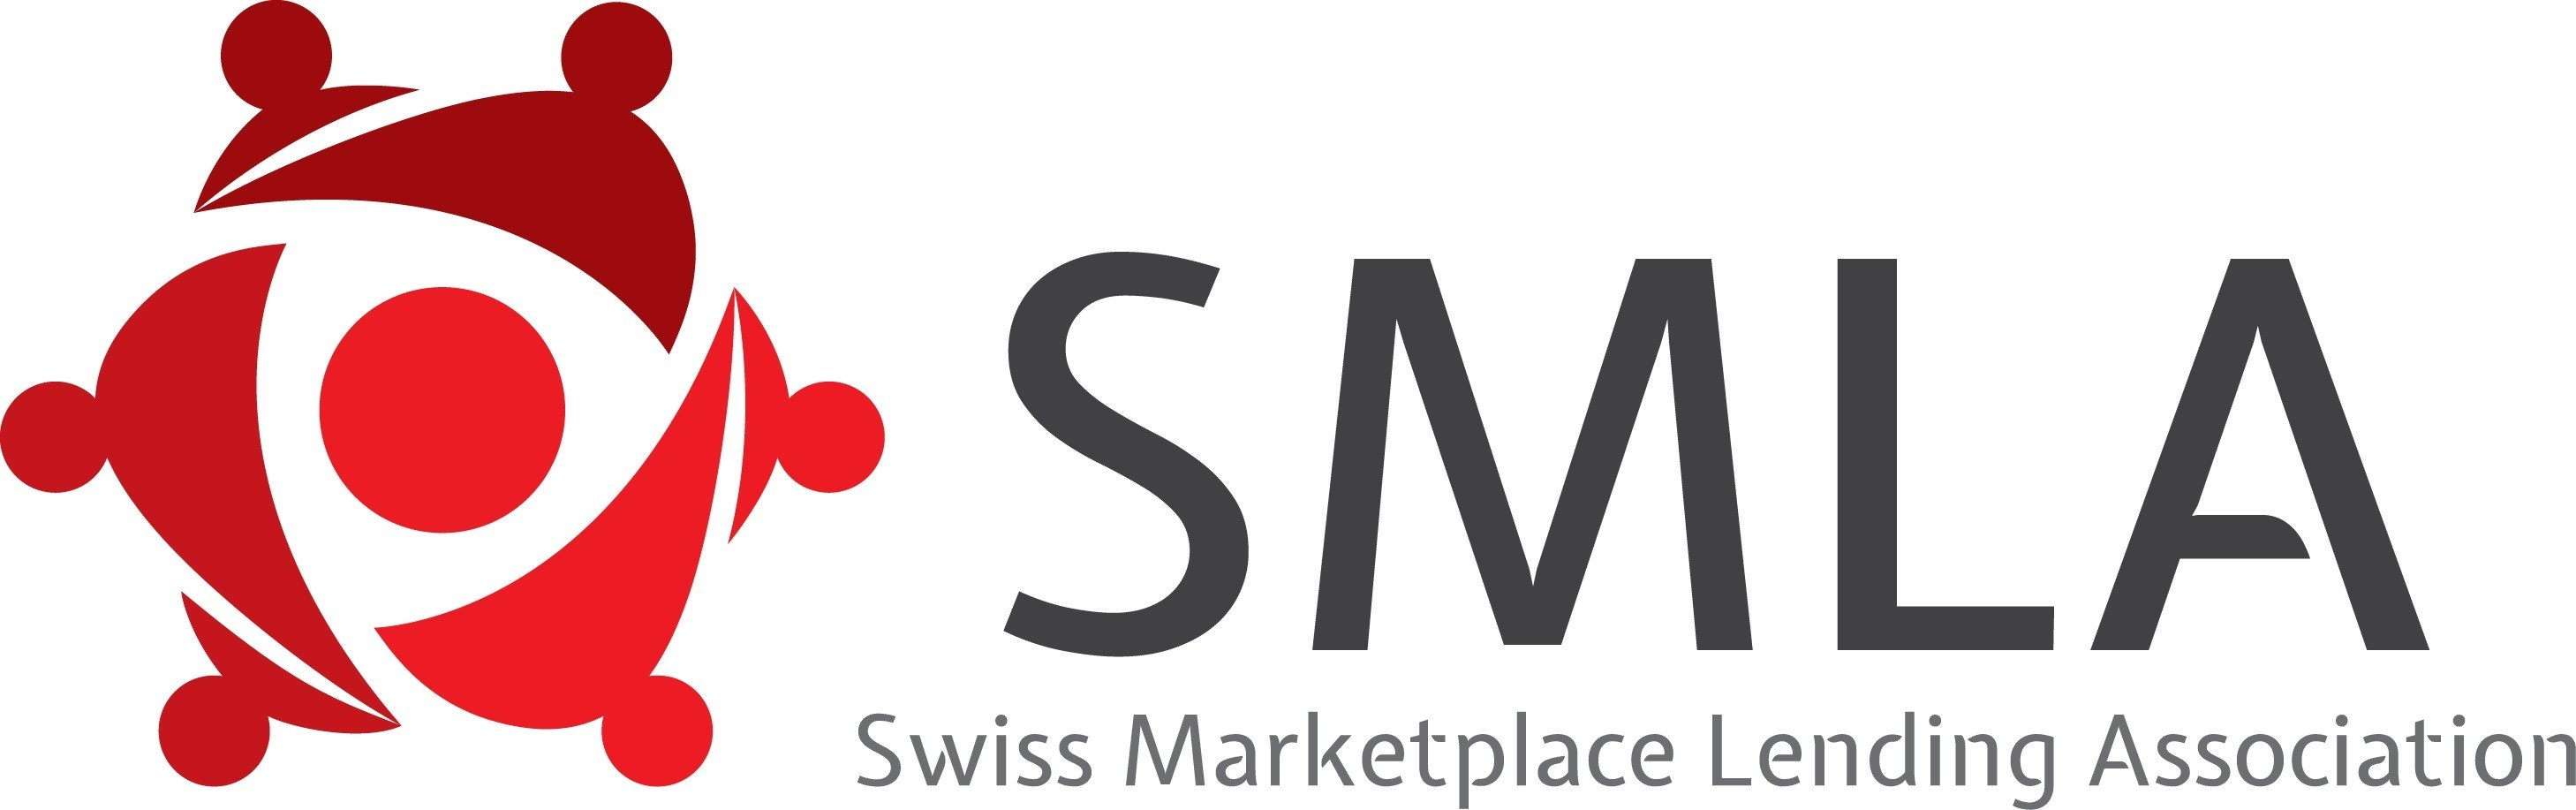 SMLA - Swiss Marketplace Lending Association